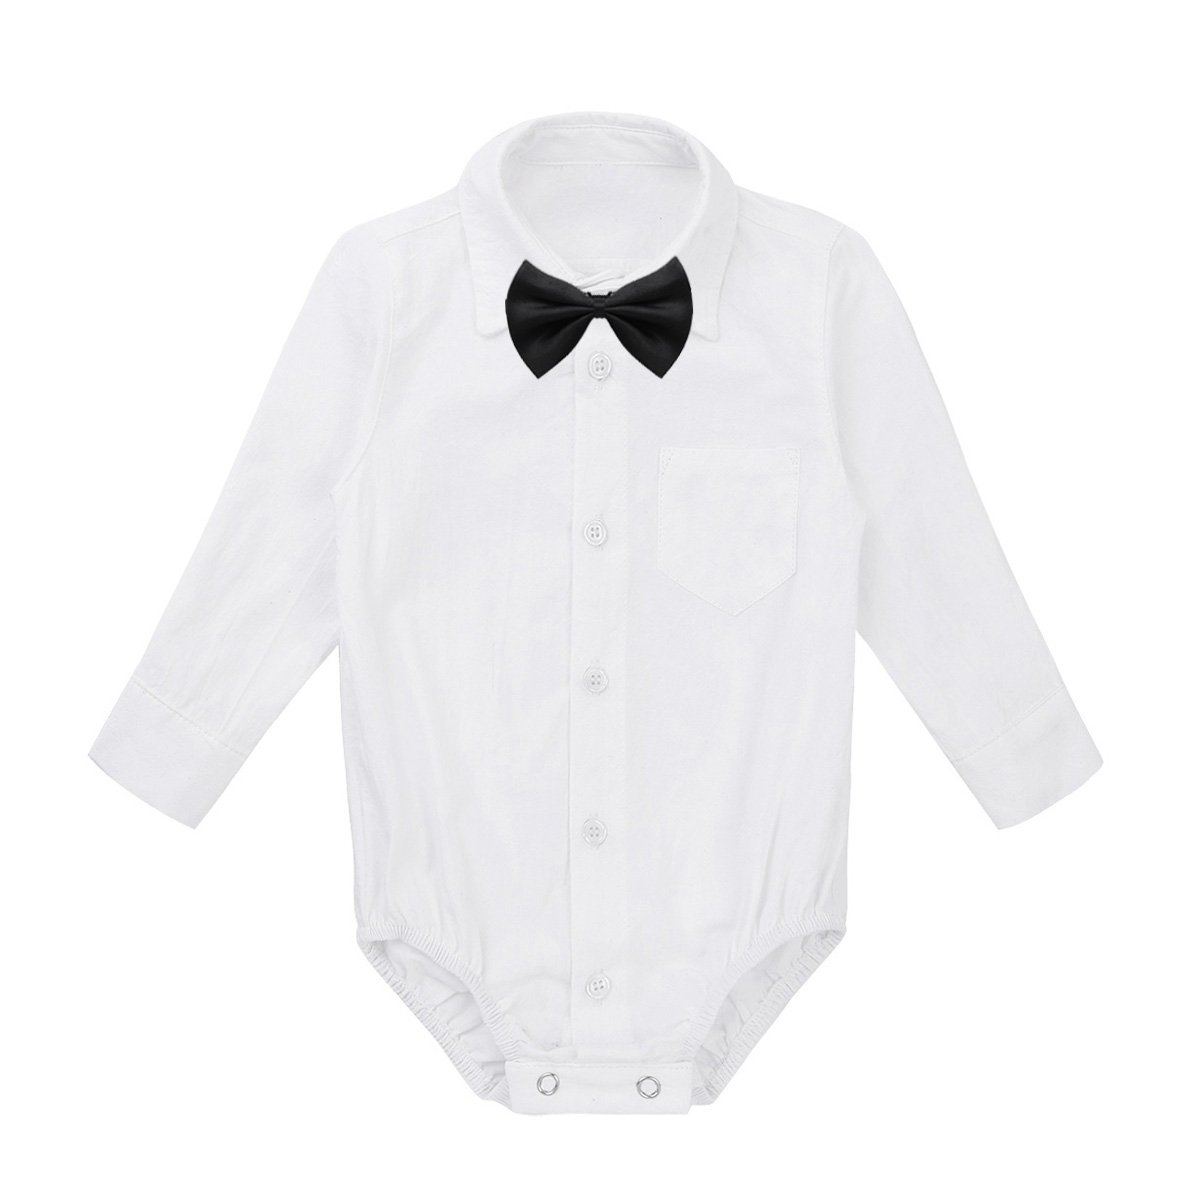 MSemis Baby Boys' White Formal Dress Shirts Gentleman Romper Bodysuit Wedding Party Outfits